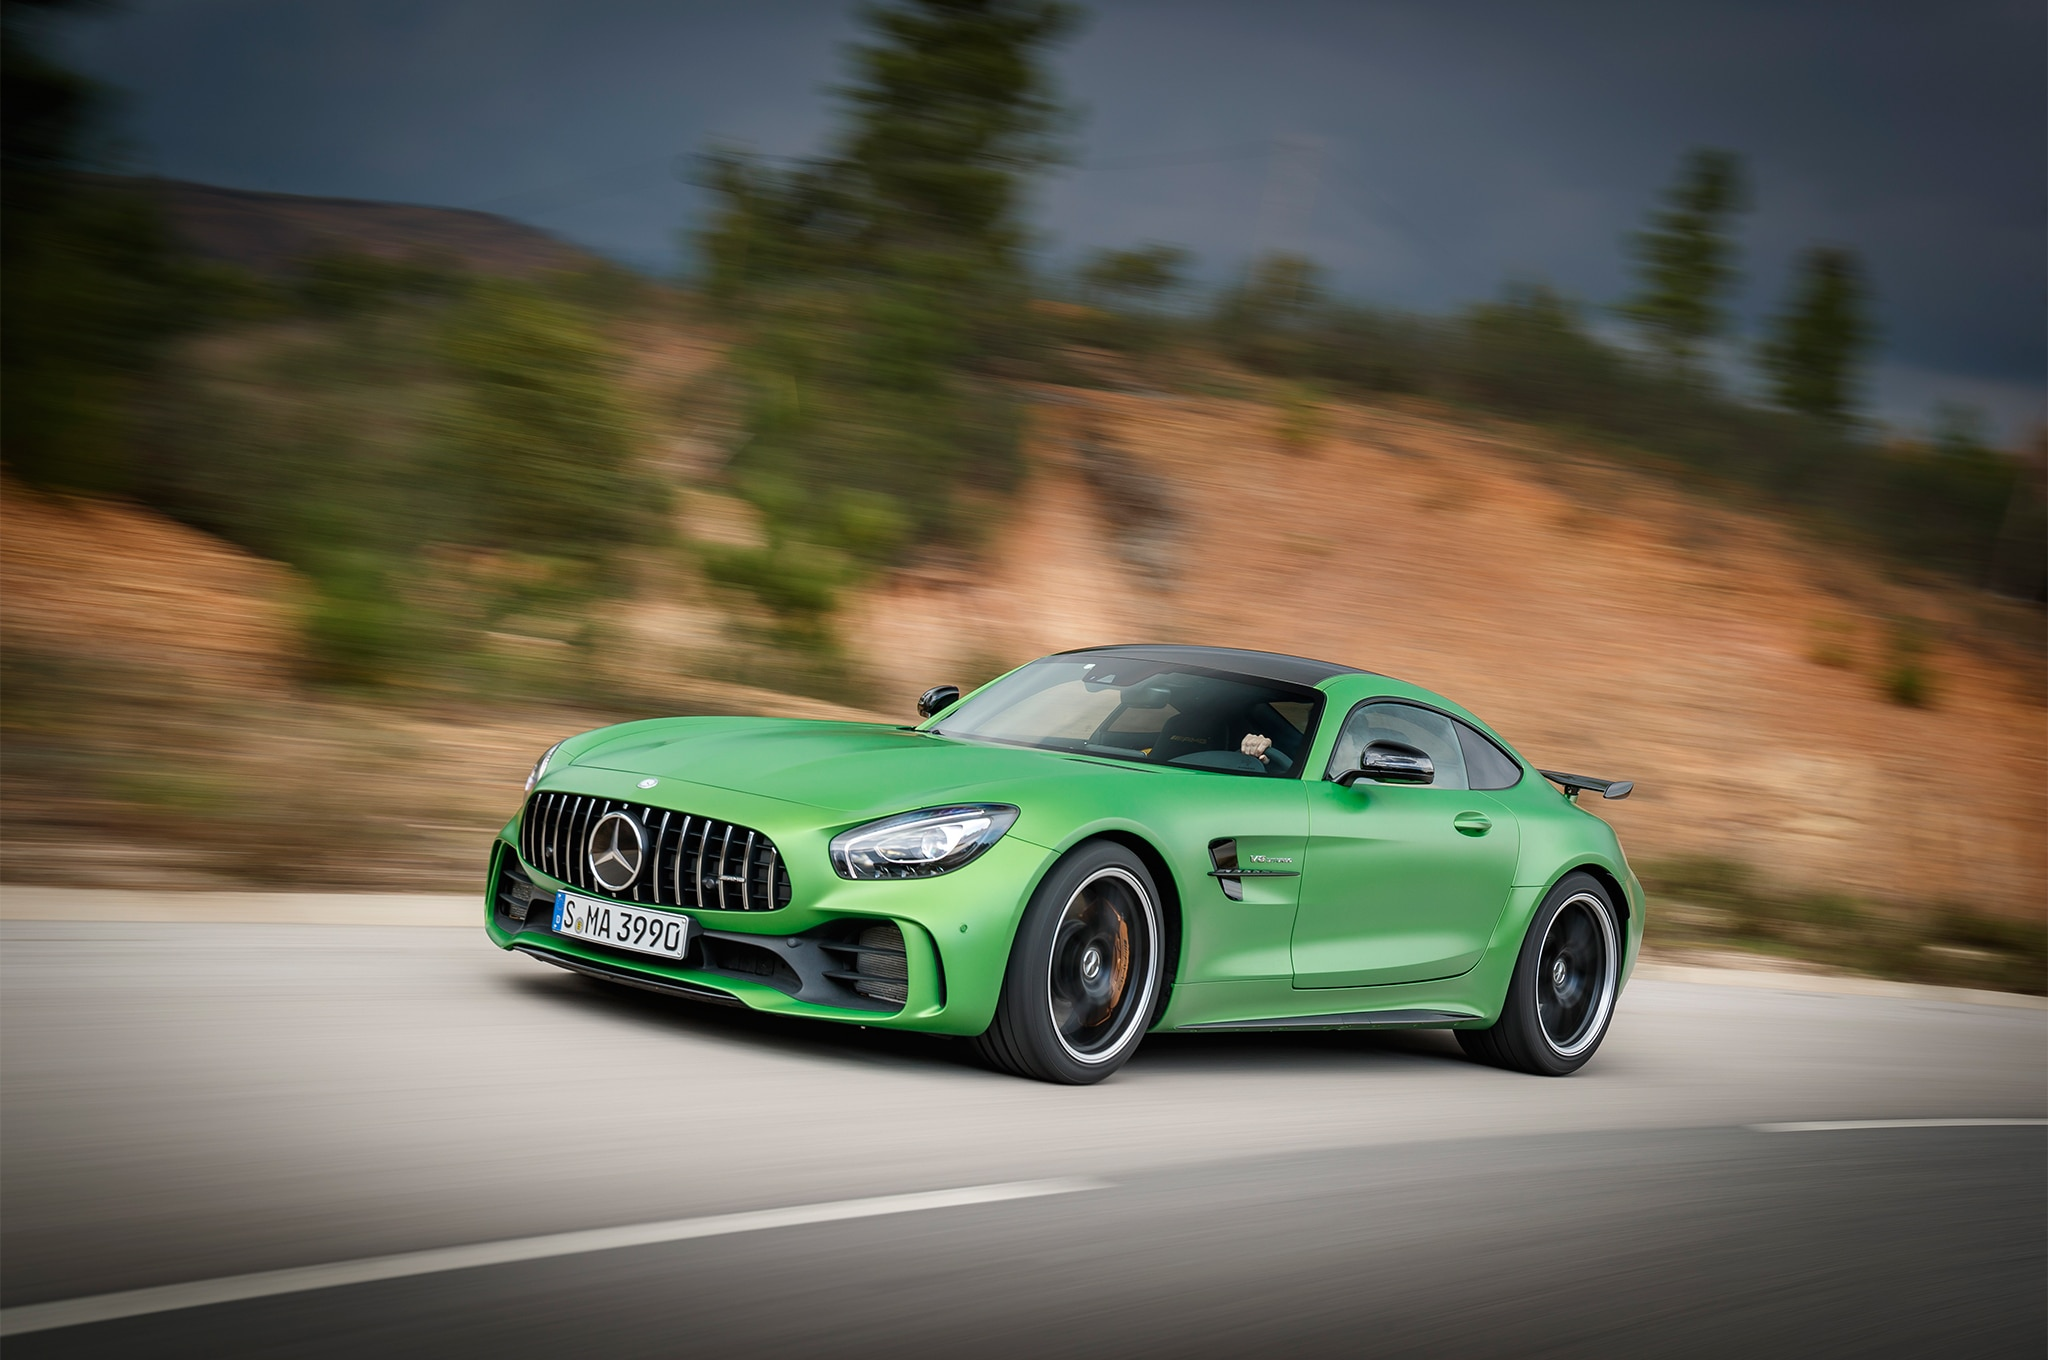 2018 Mercedes-AMG GT Coupe and Roadster Pricing Announced | Automobile Magazine